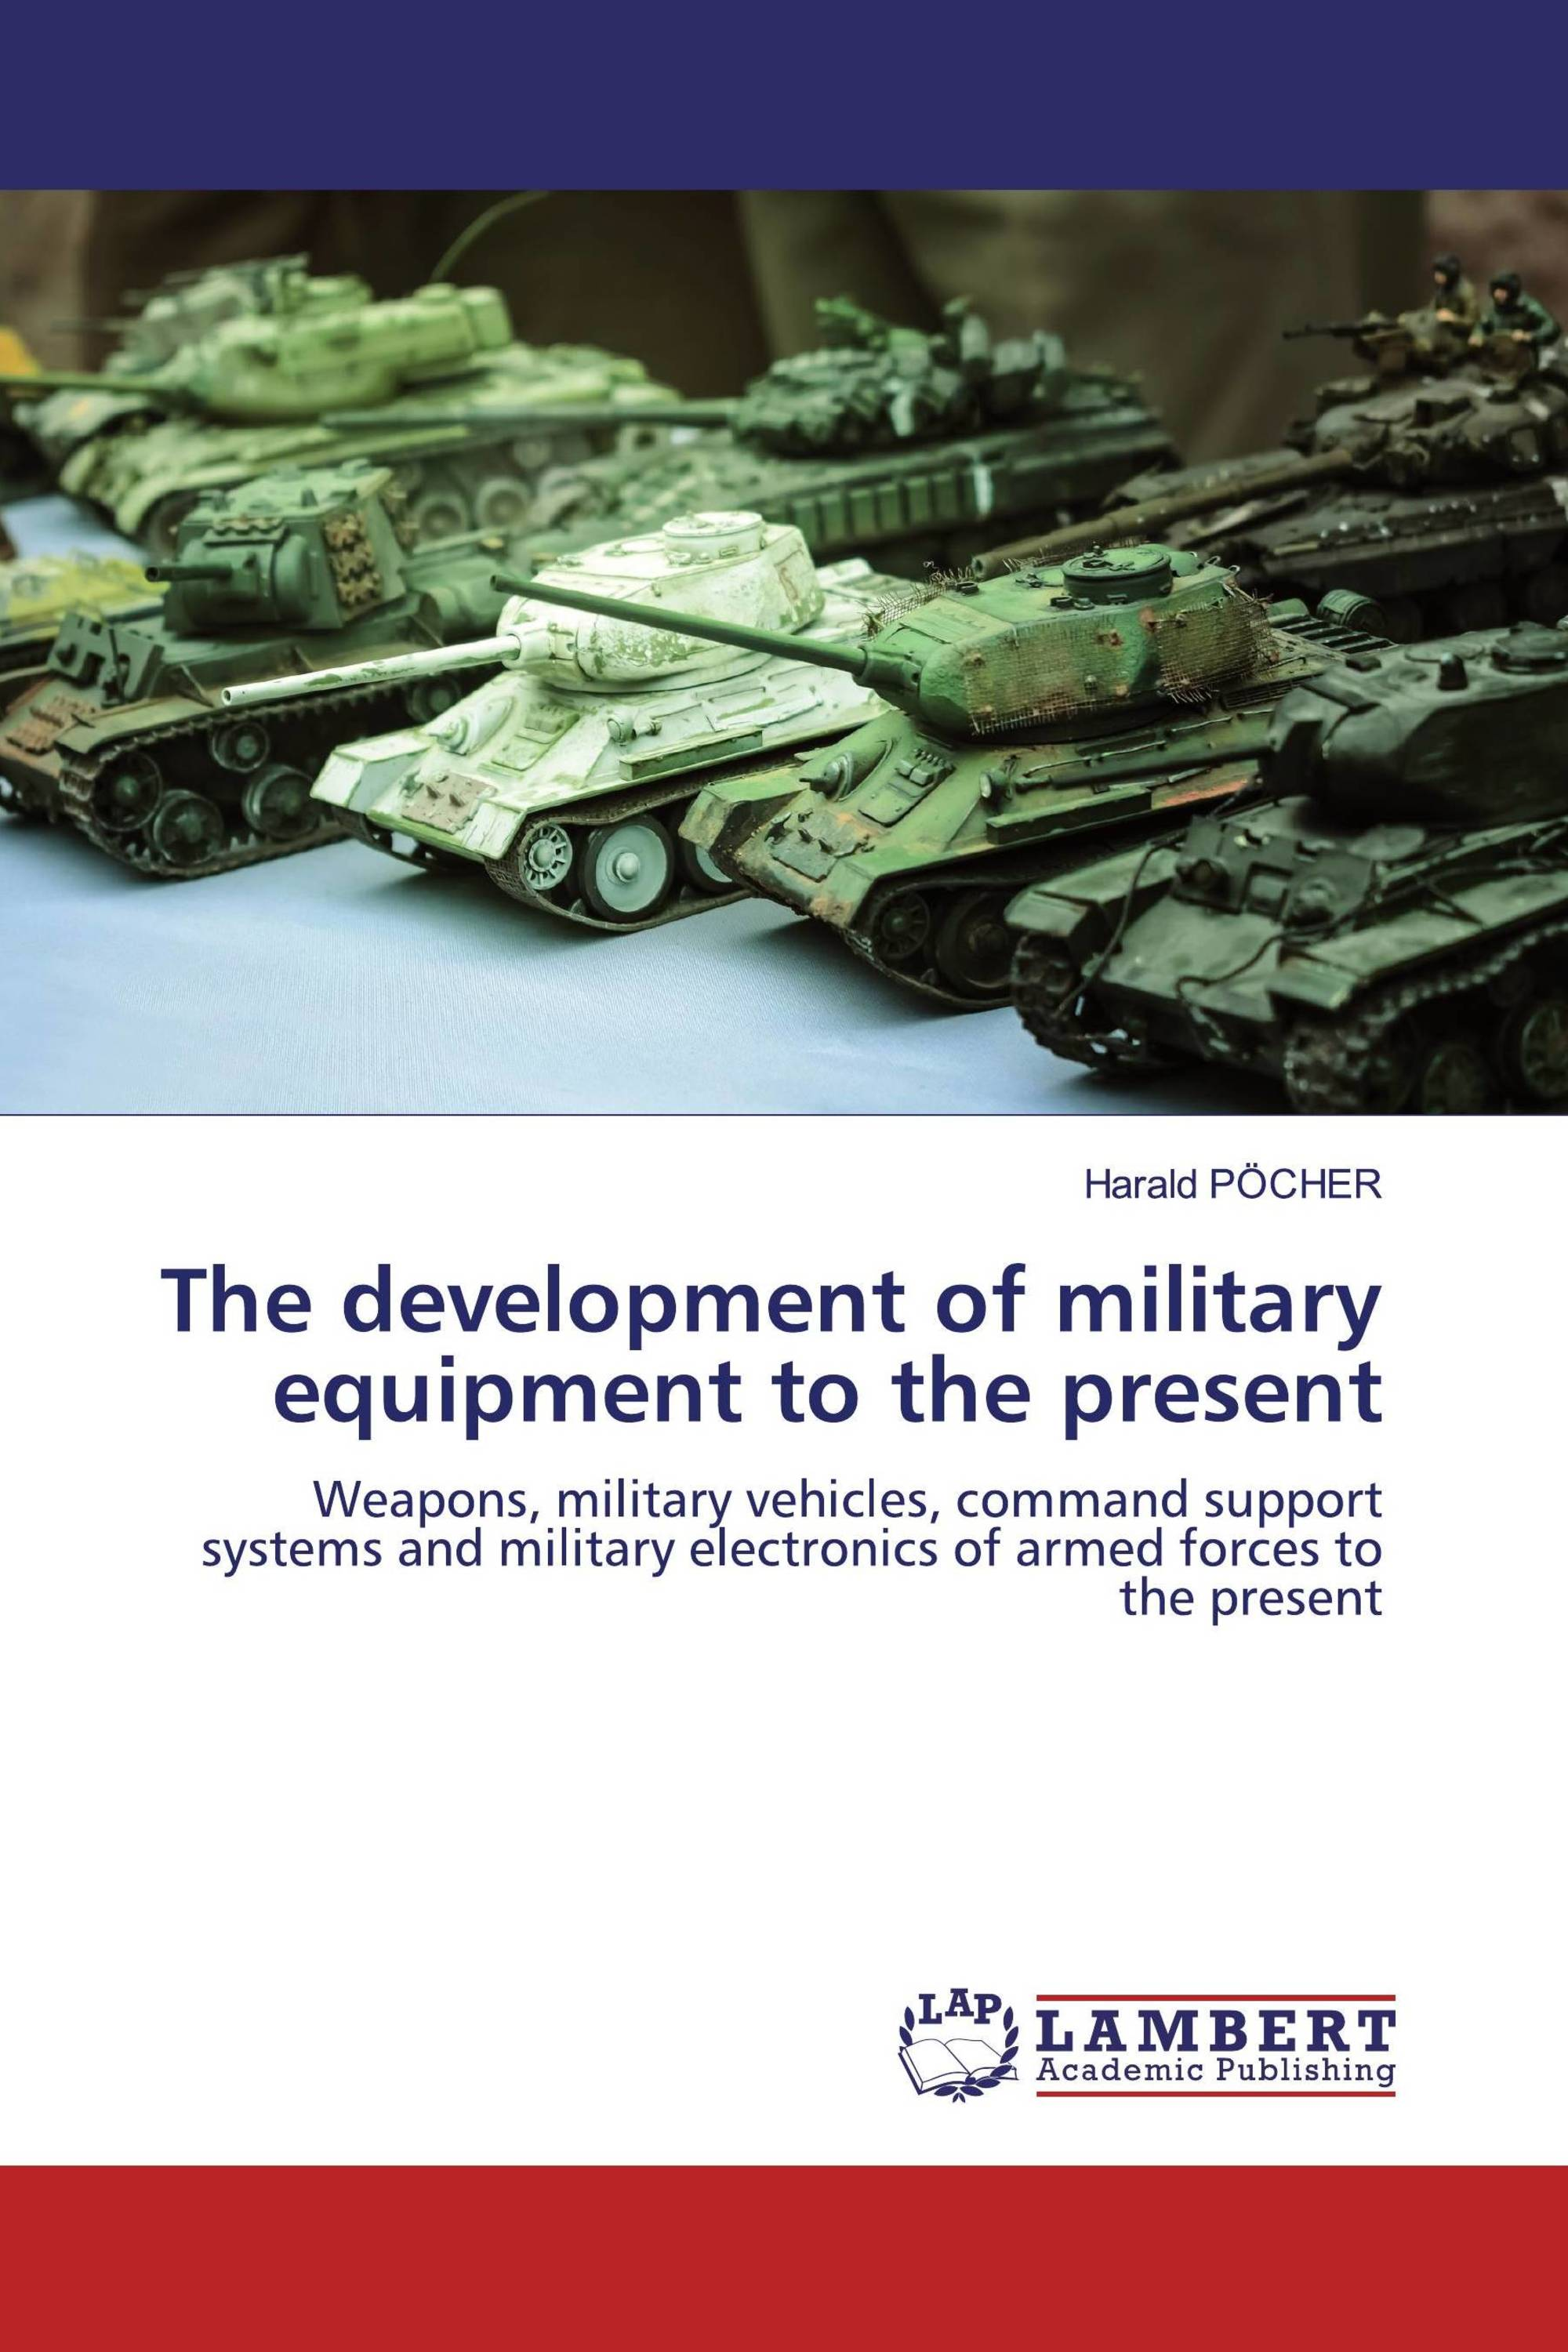 The development of military equipment to the present